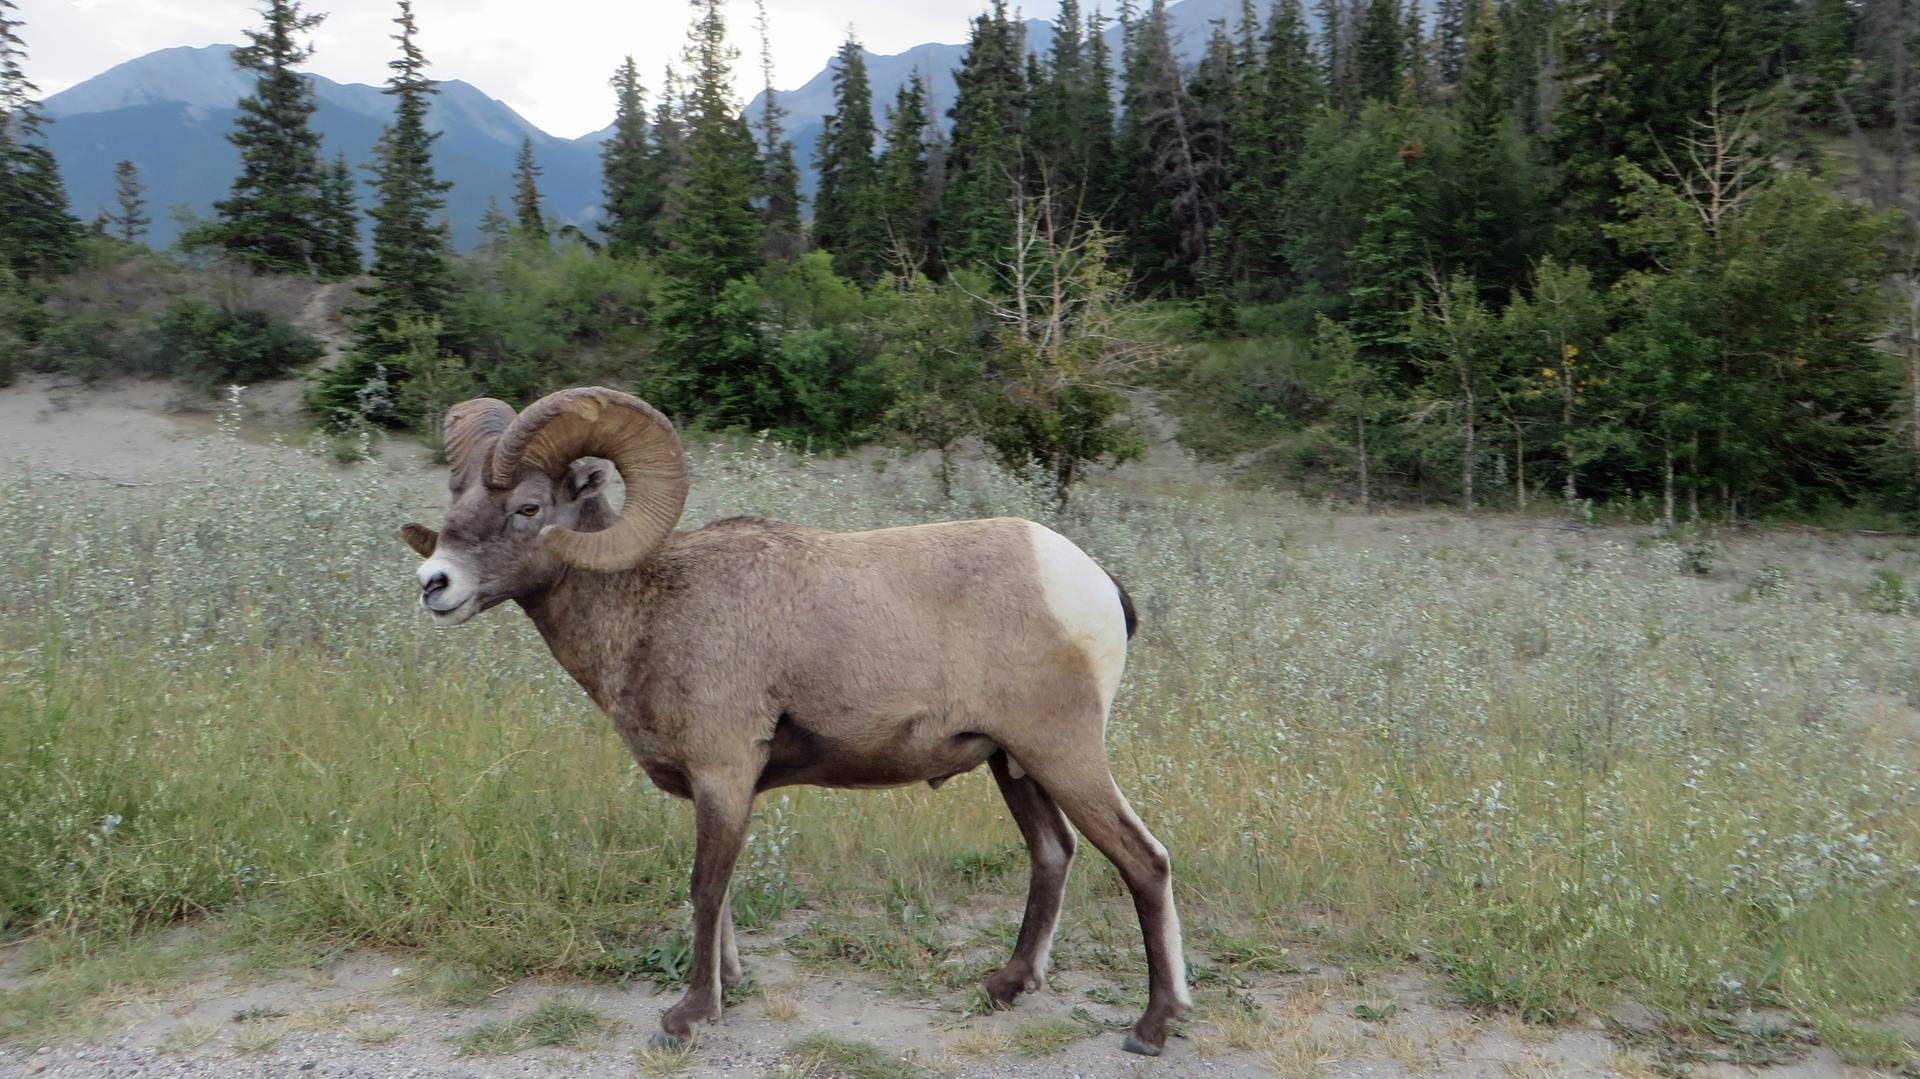 Big Horned Sheep on road from Jasper to Edmonton